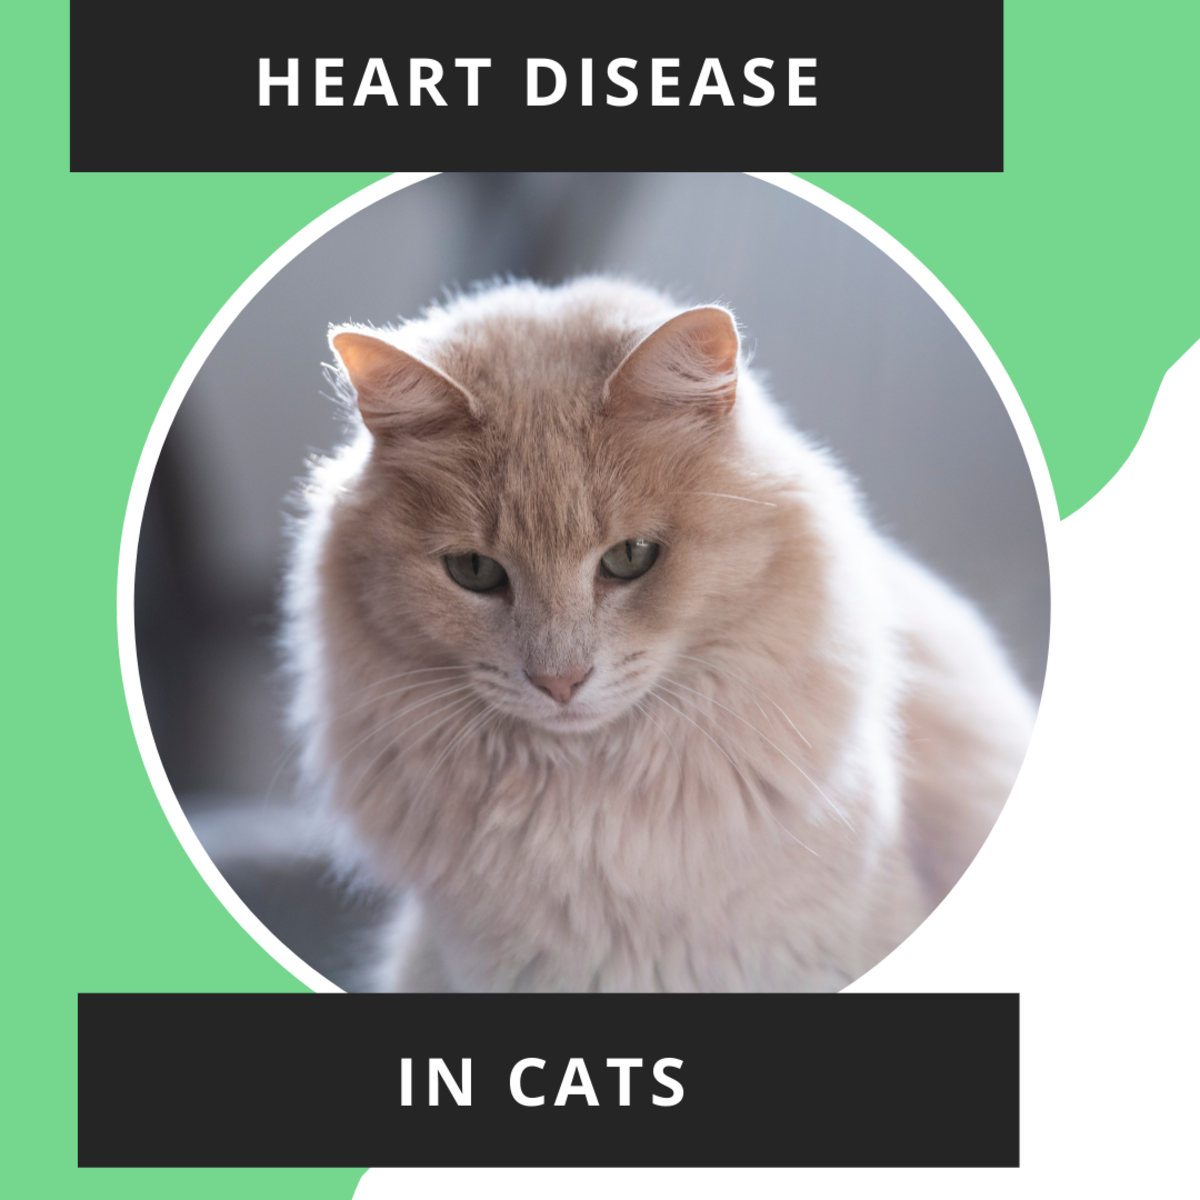 Signs and Causes of Heart Disease in Cats